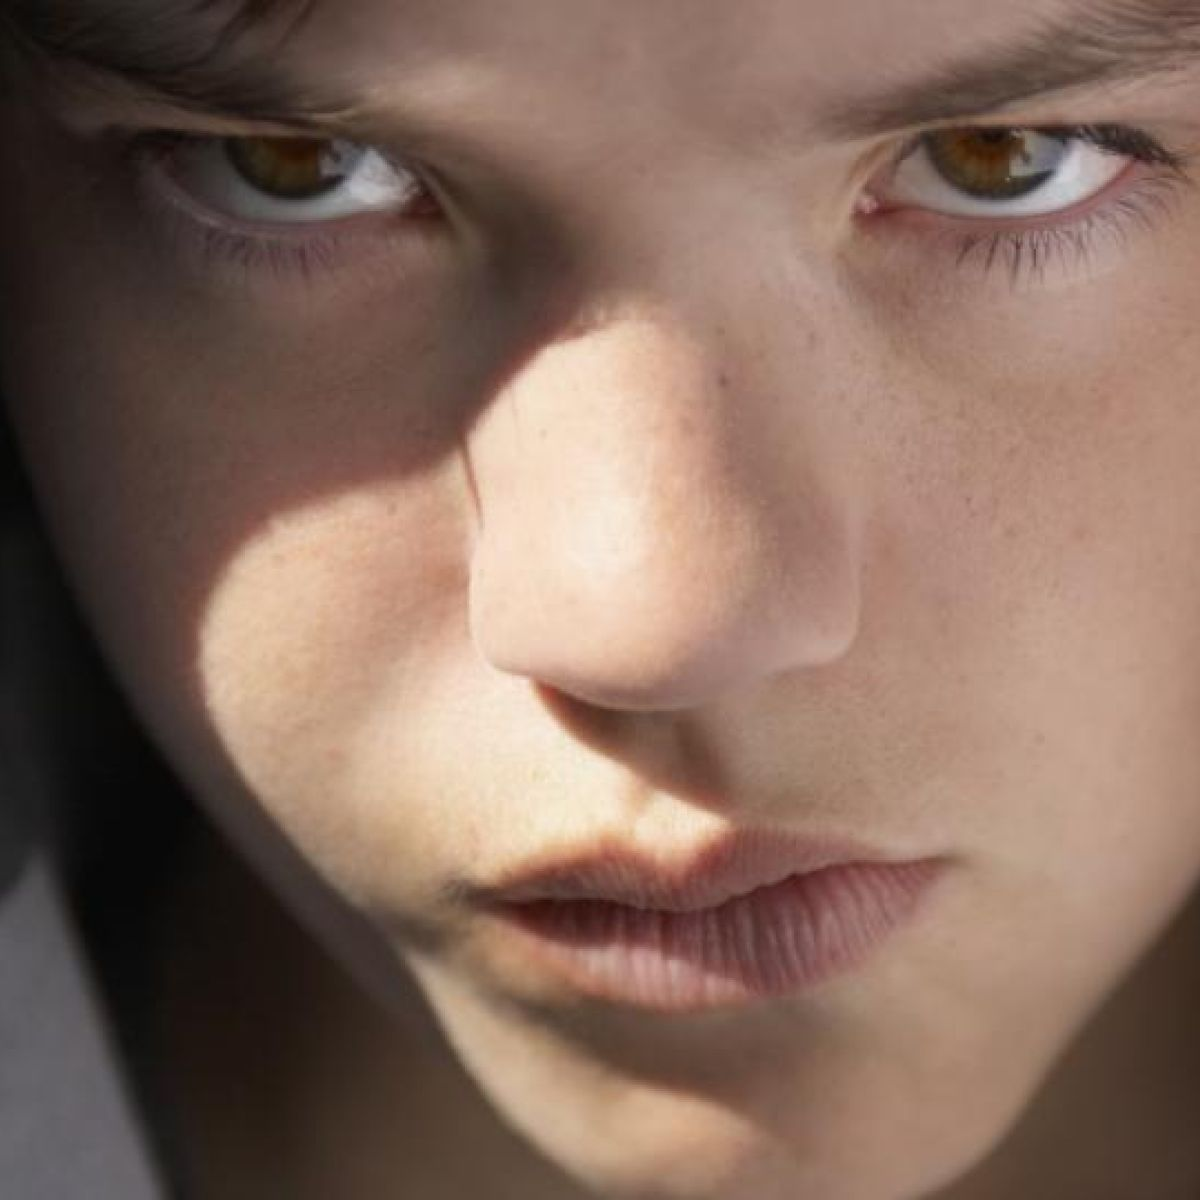 Ask the expert: My 12-year-old boy has become angry overnight